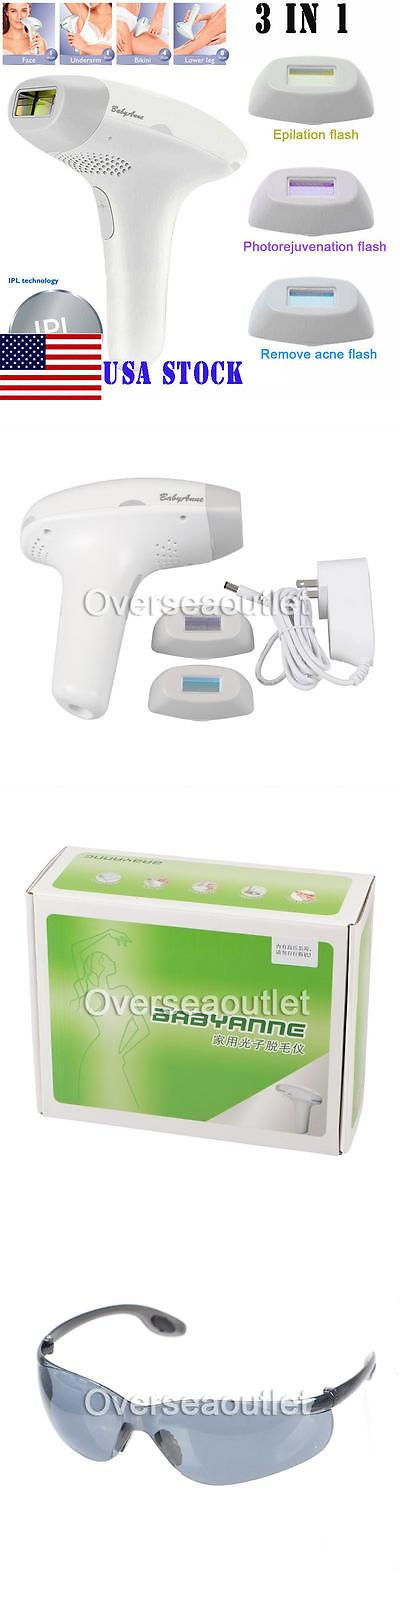 Laser Hair Removal and IPL: Usa 3 In 1 Laser Ipl Permanent Hair Removal Machine Face Body+Whiten Skin Fda -> BUY IT NOW ONLY: $96.88 on eBay!